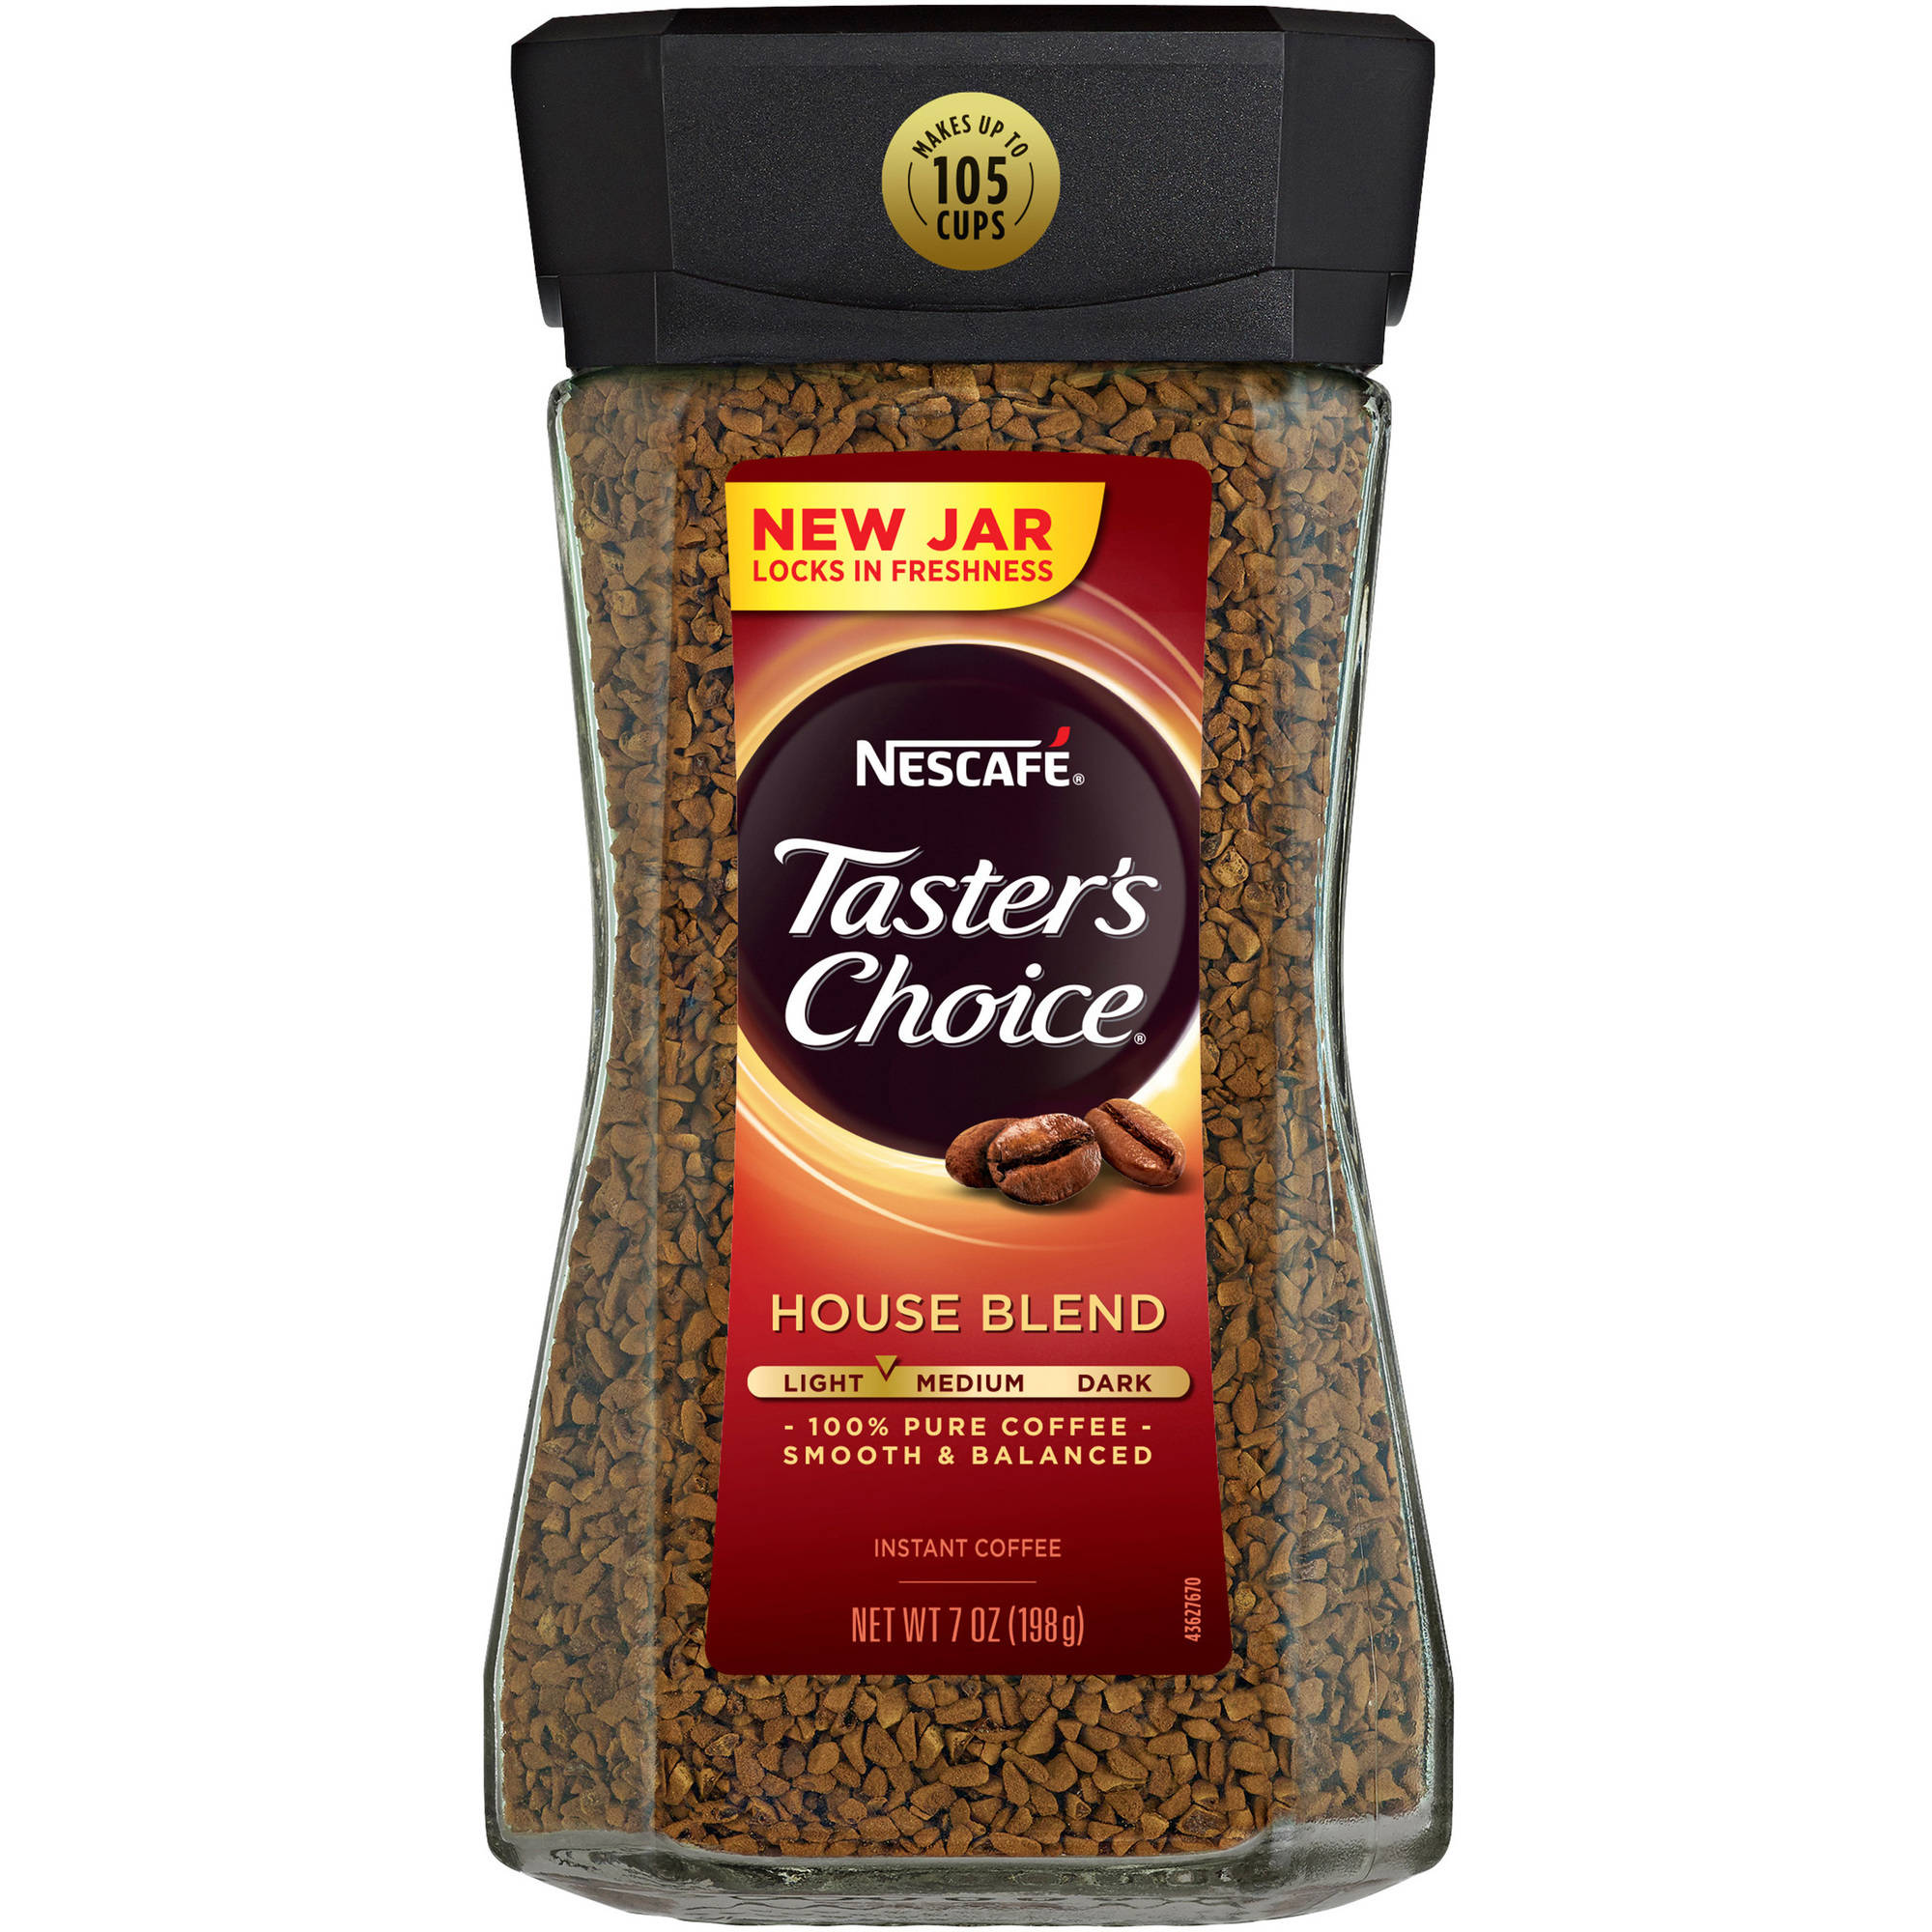 Nescafe Taster's Choice House Blend Instant Coffee, 7 oz